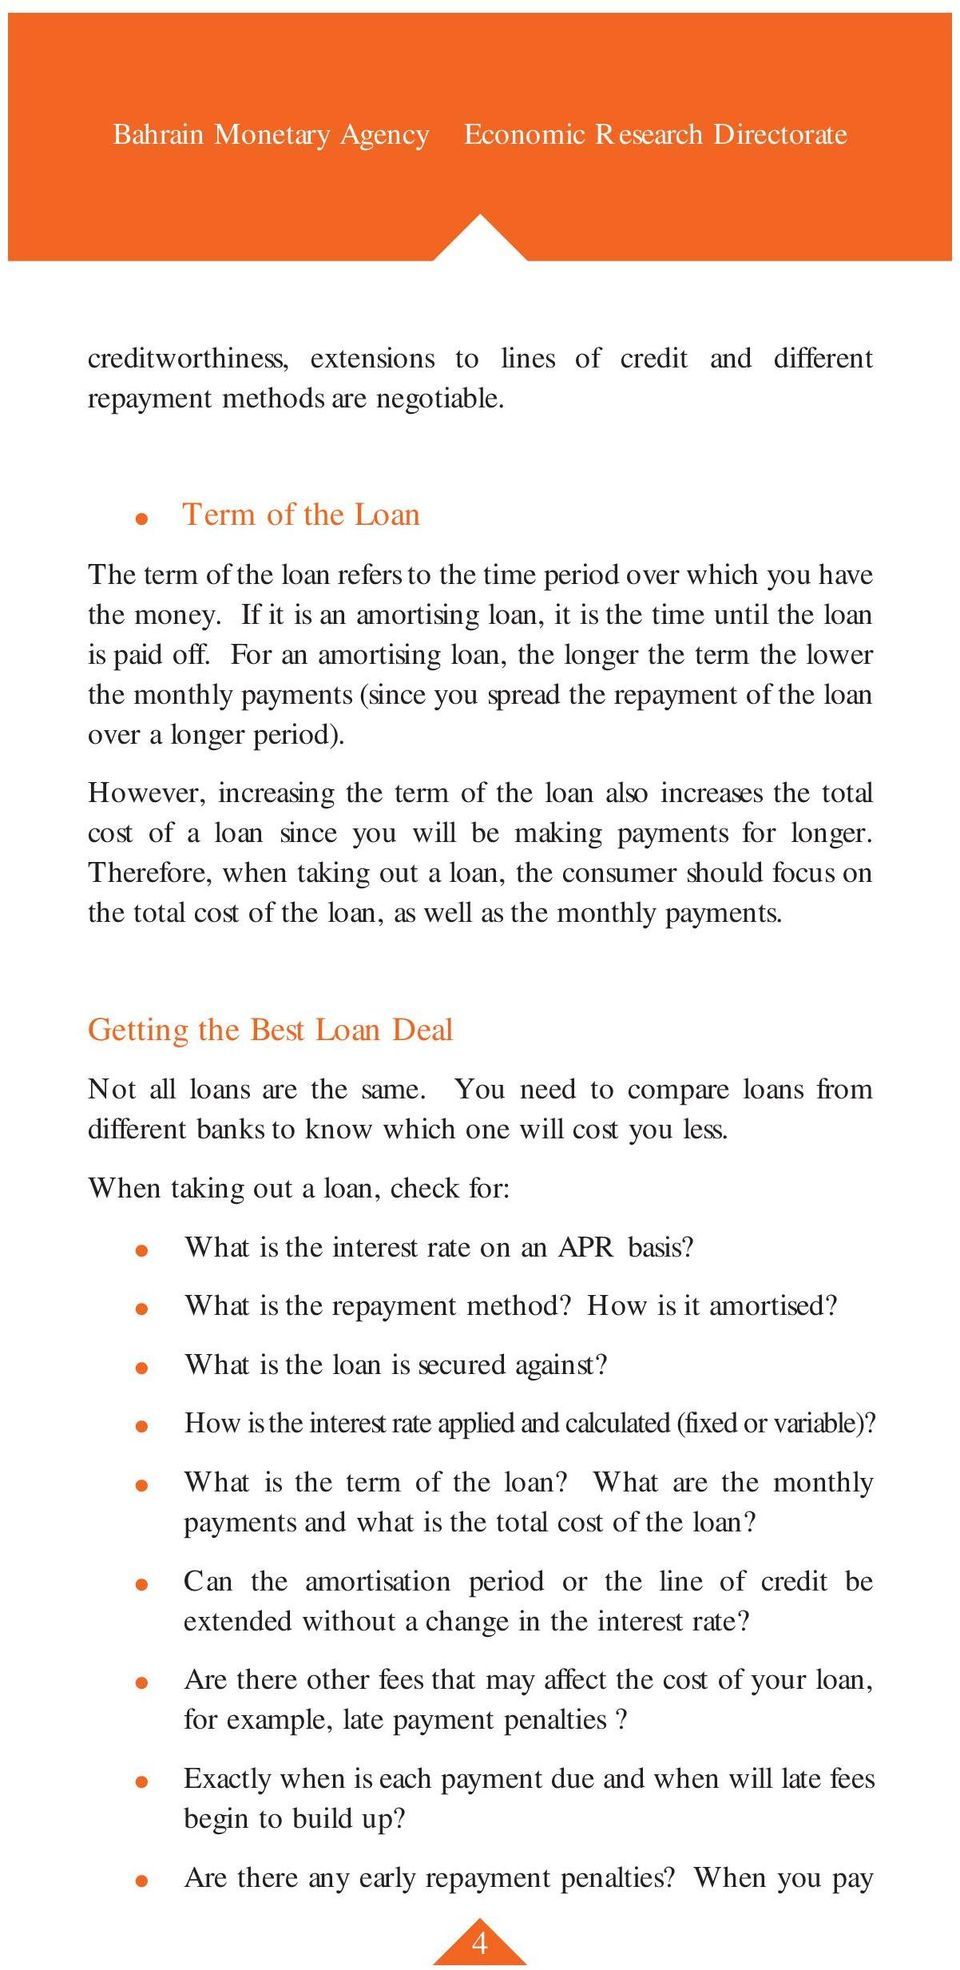 For an amortising loan, the longer the term the lower the monthly payments (since you spread the repayment of the loan over a longer period).